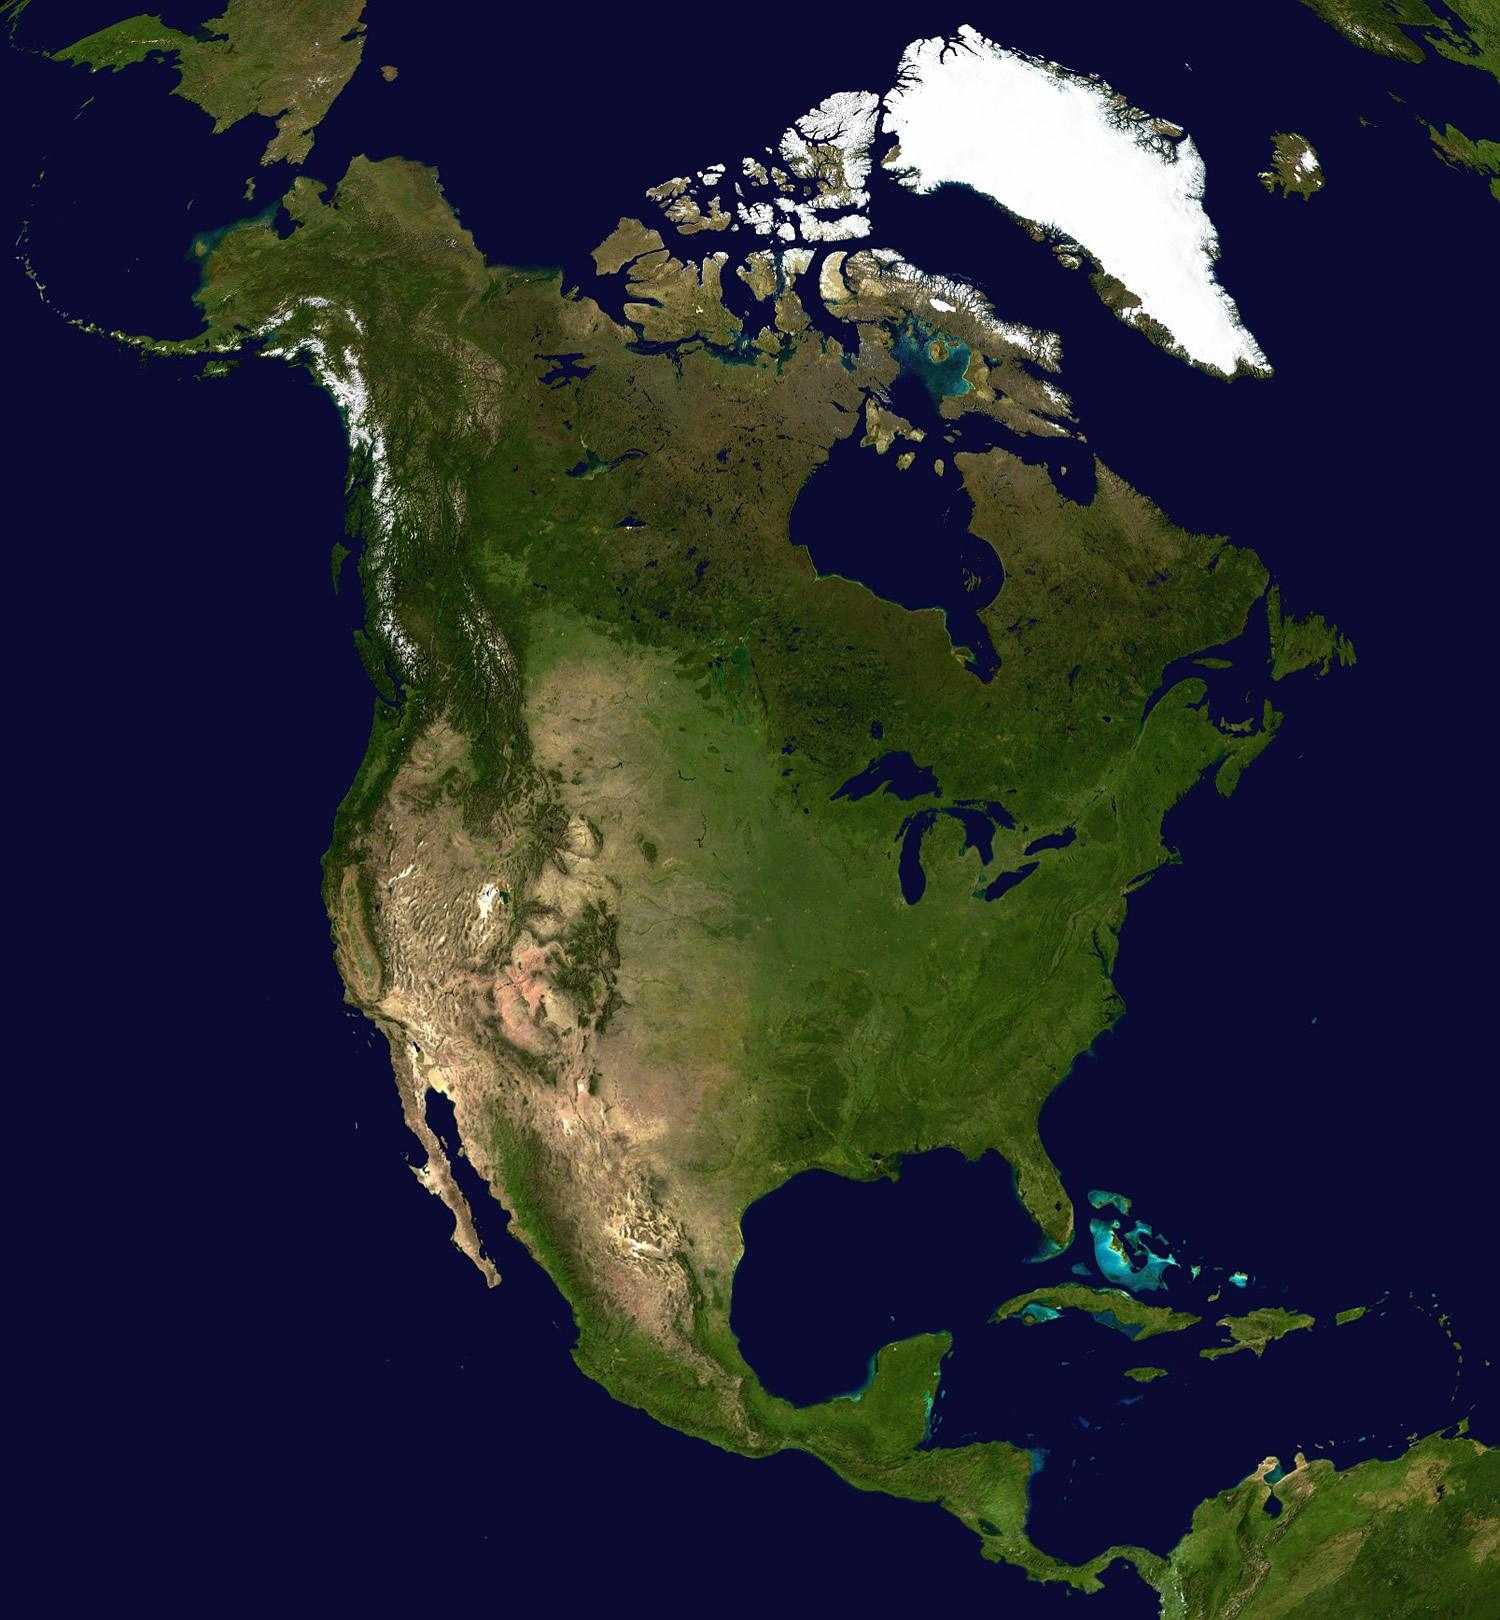 north america satellite image